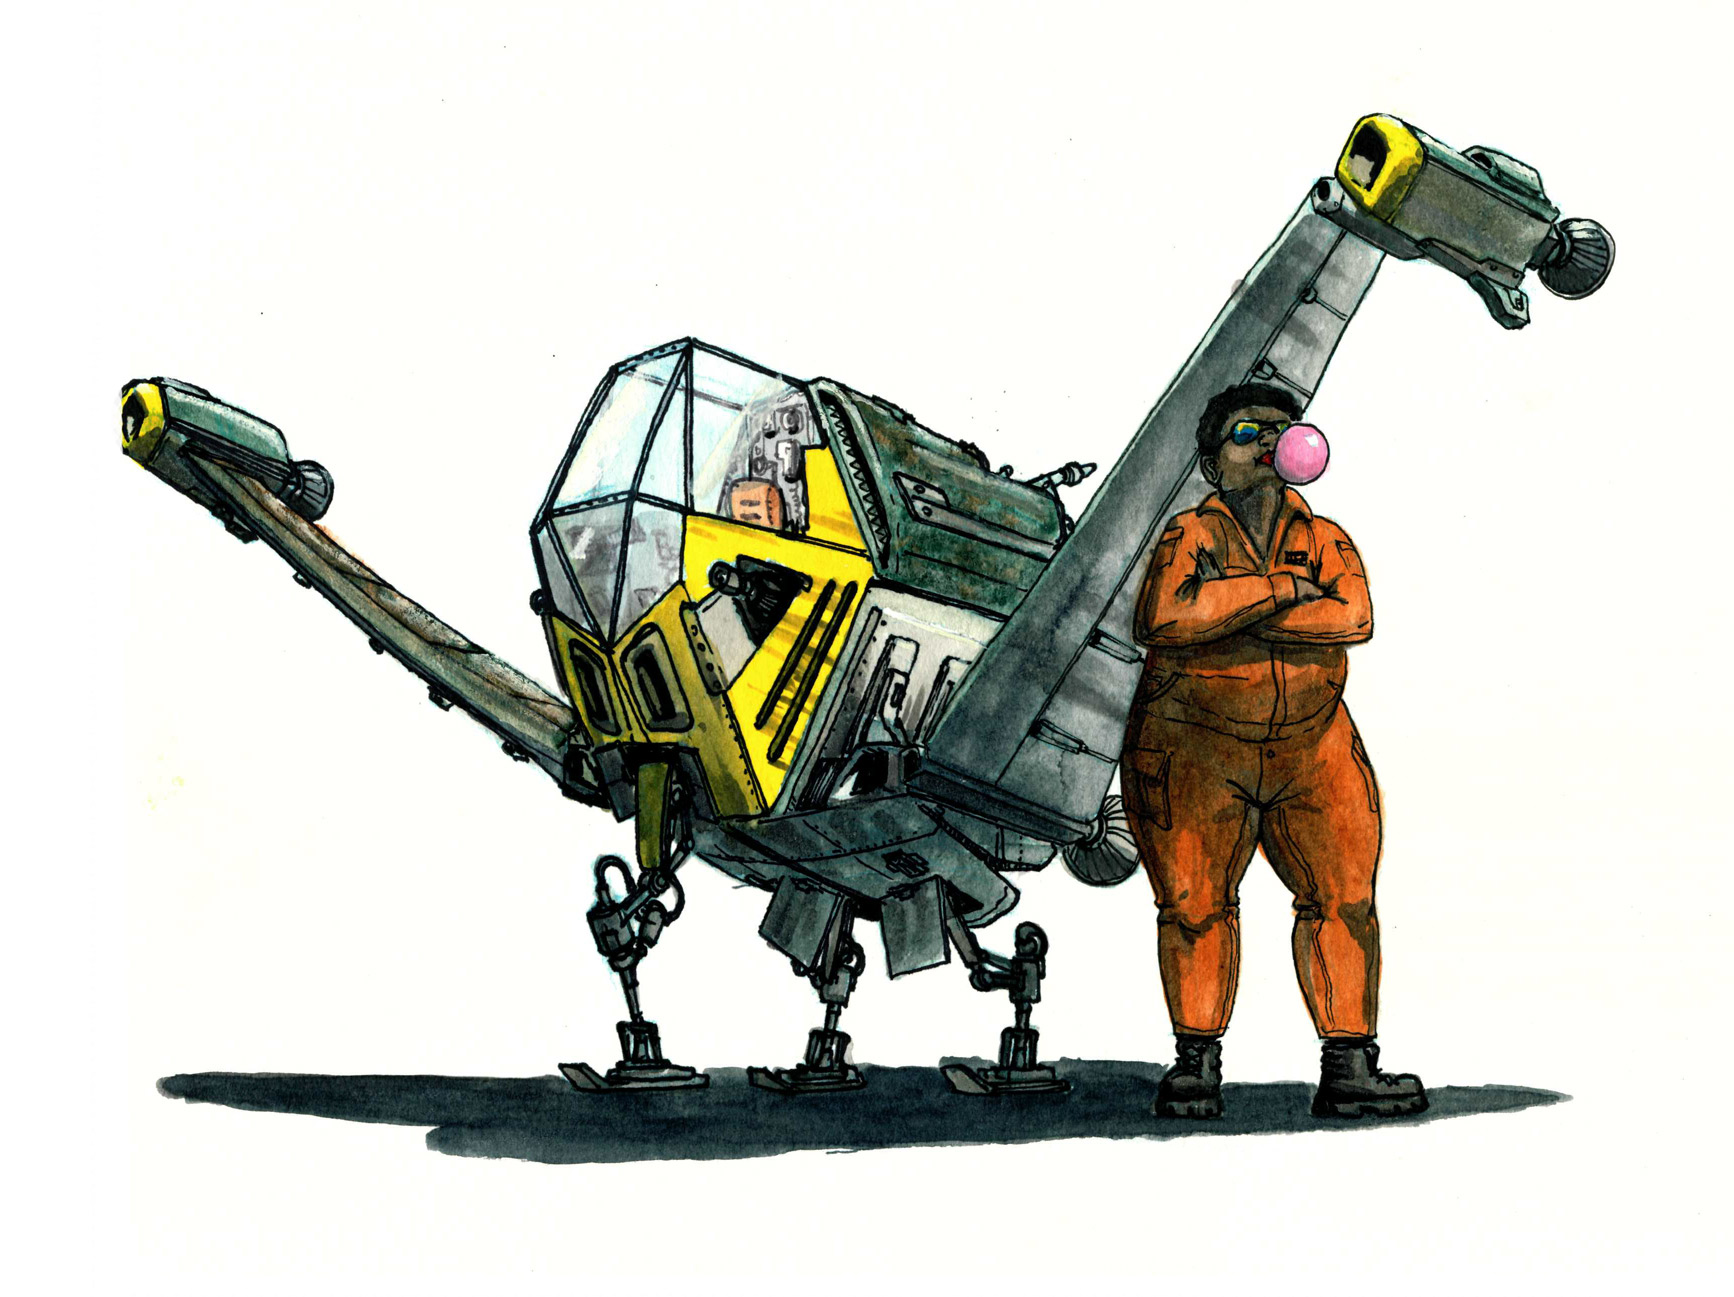 Pilot_AND_mechanic2.jpg